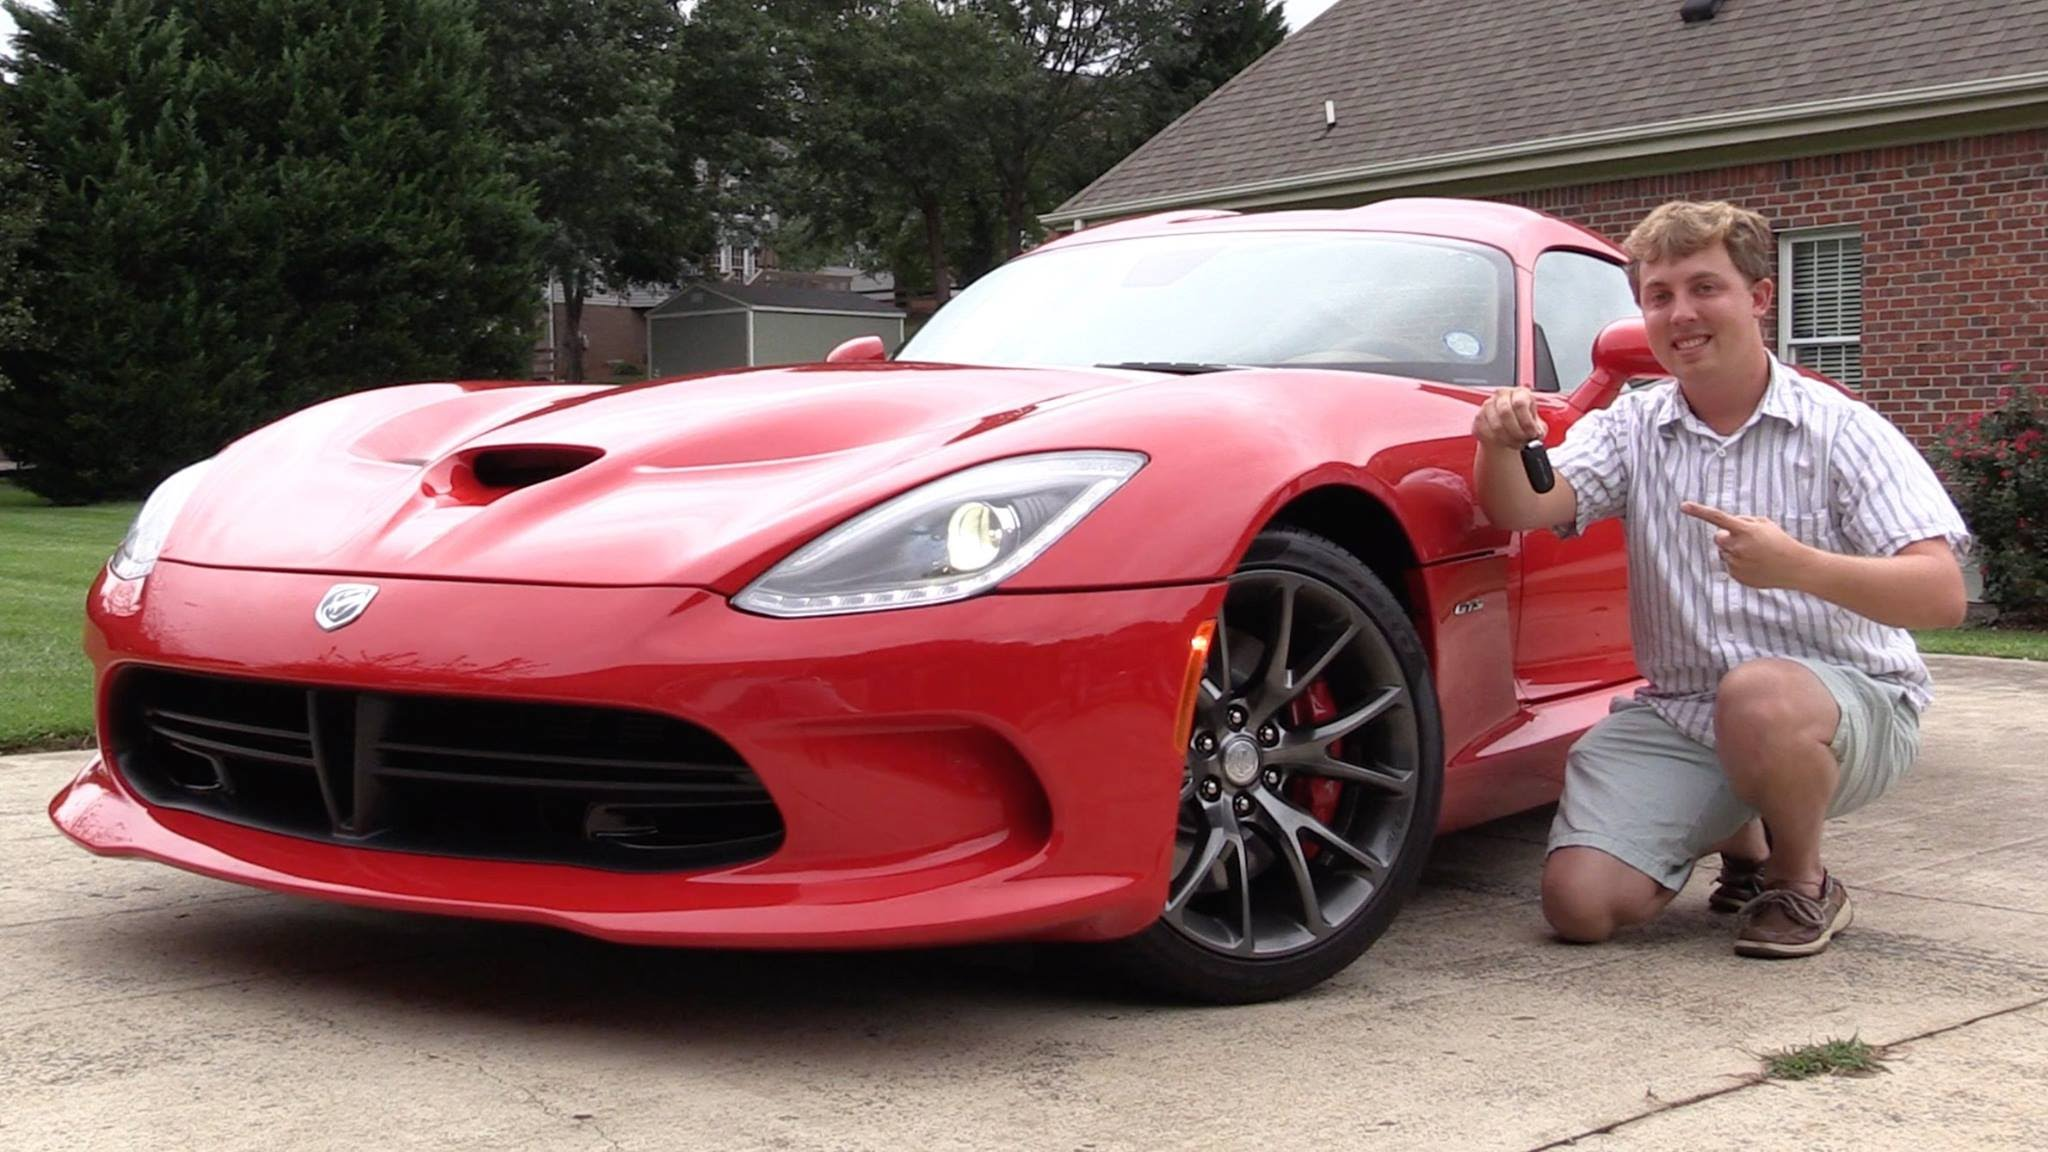 Youtuber Saabkyle04 Buys His Dream Car A Dodge Viper